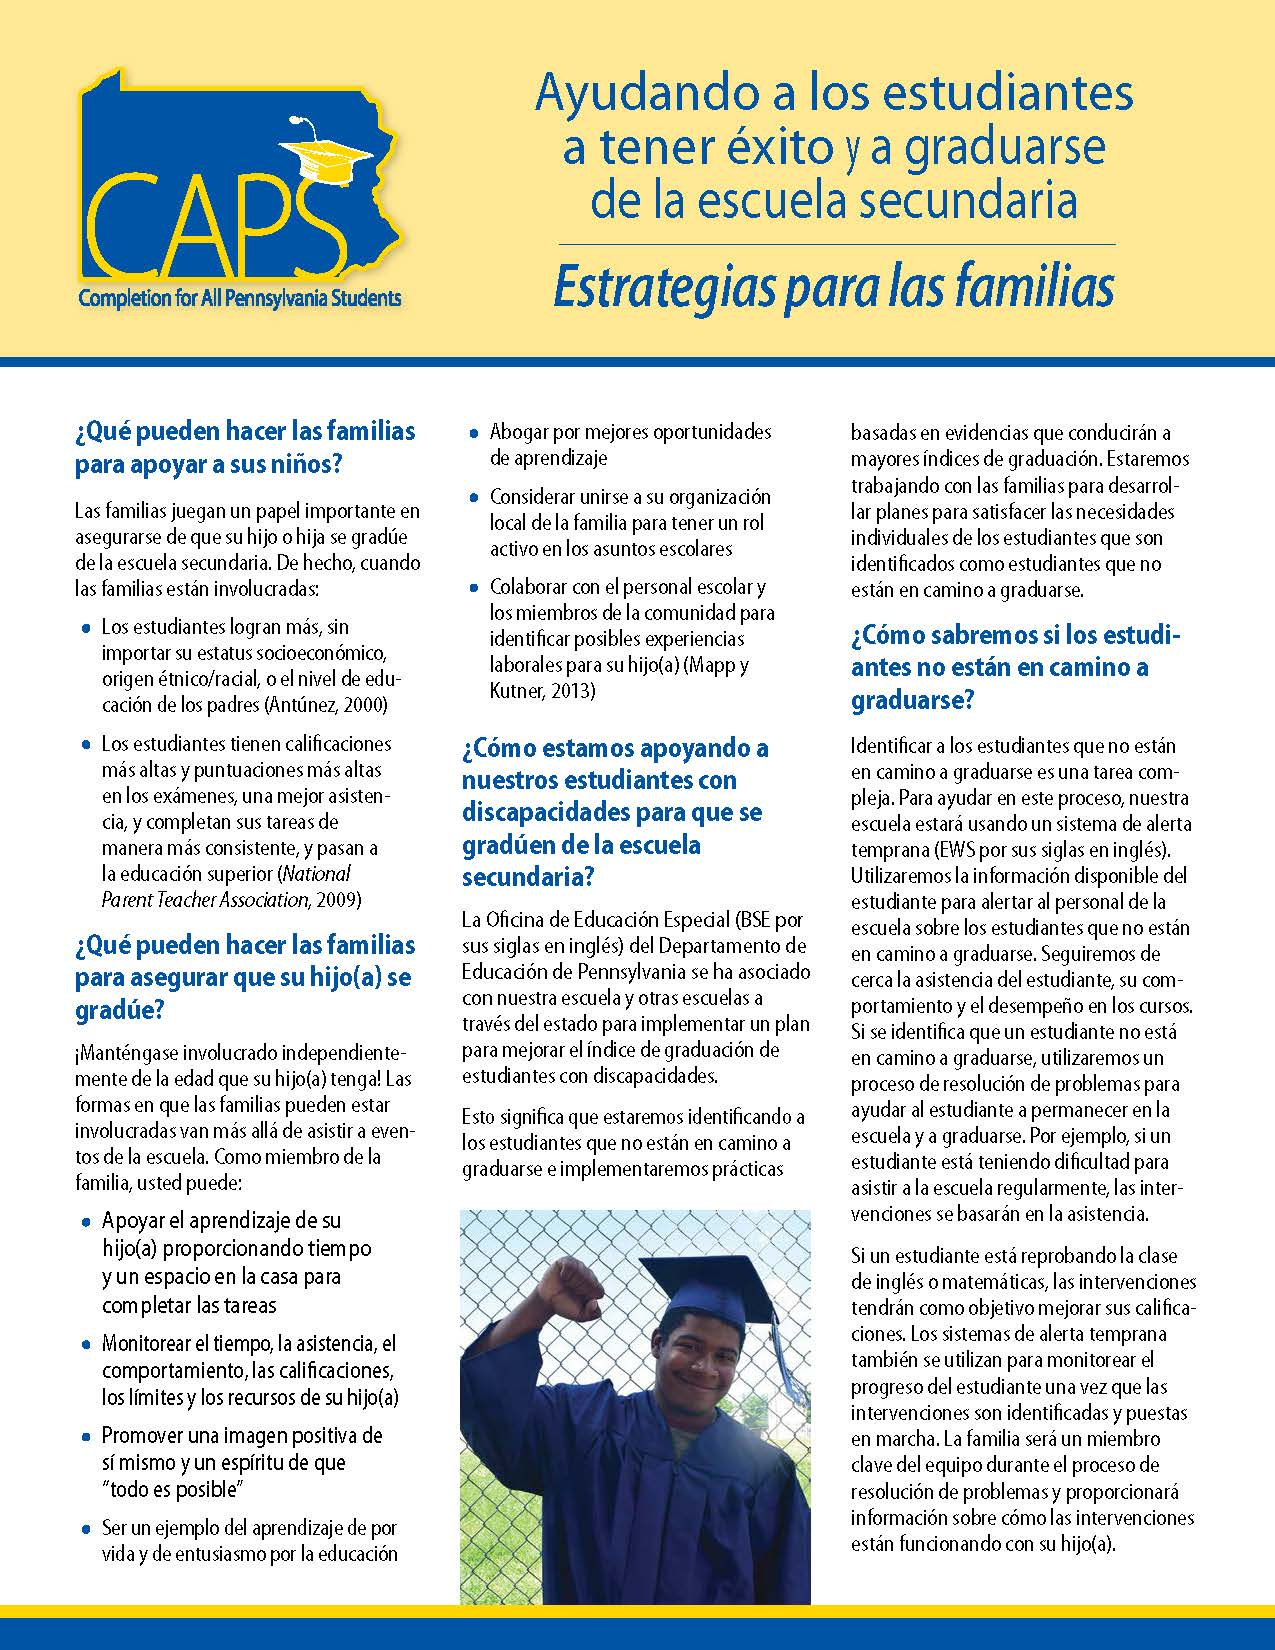 CAPS: Helping Students Succeed and Graduate From High School - Strategies for Families (Spanish)